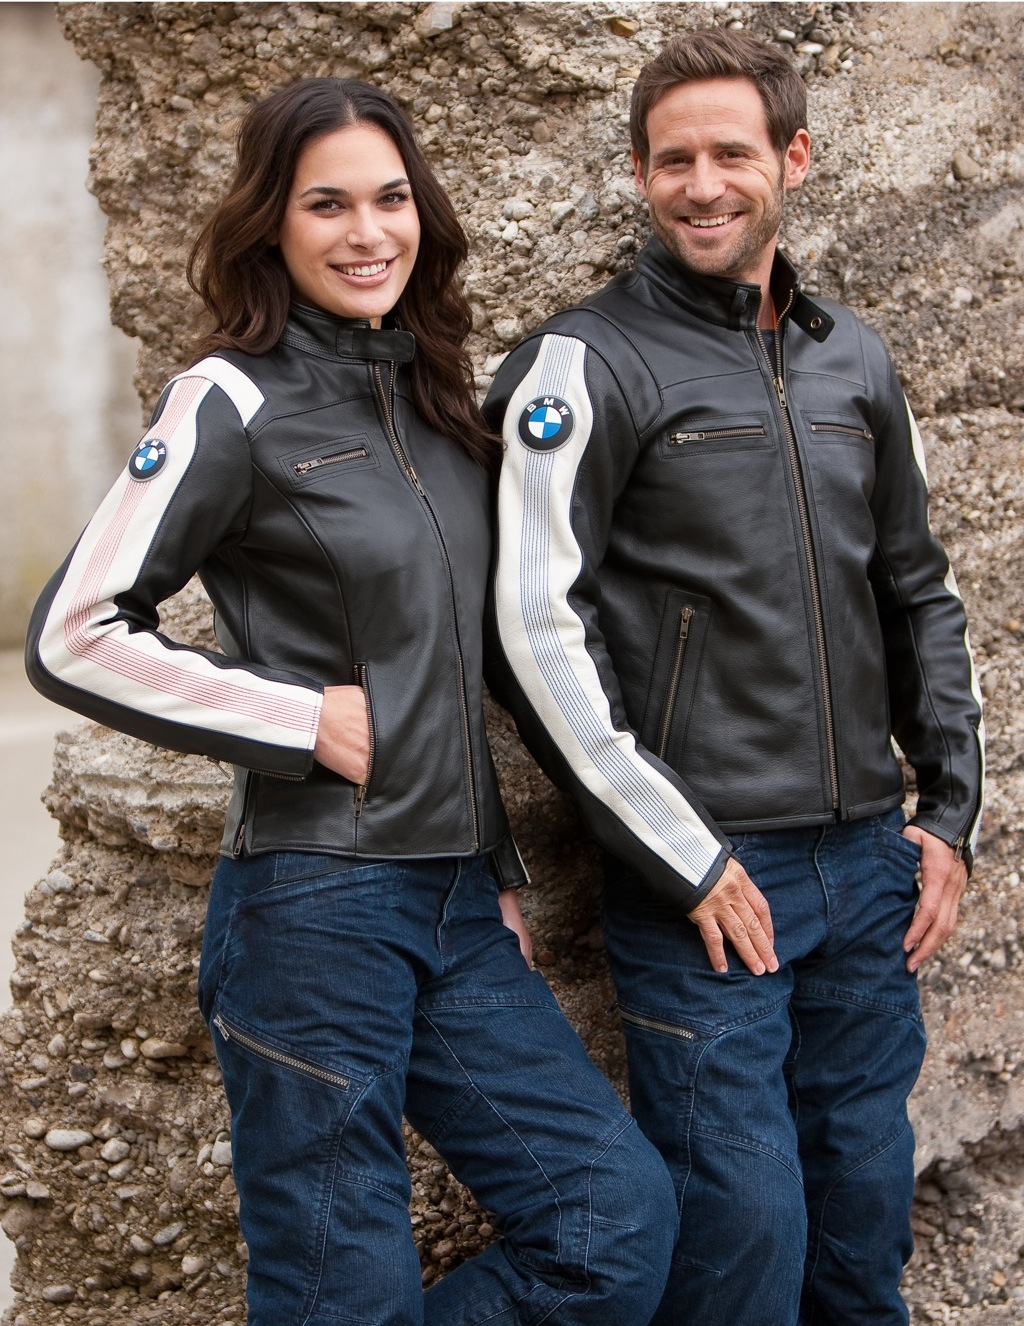 BMW Launches 2011 Rider Equipment Collection   autoevolution